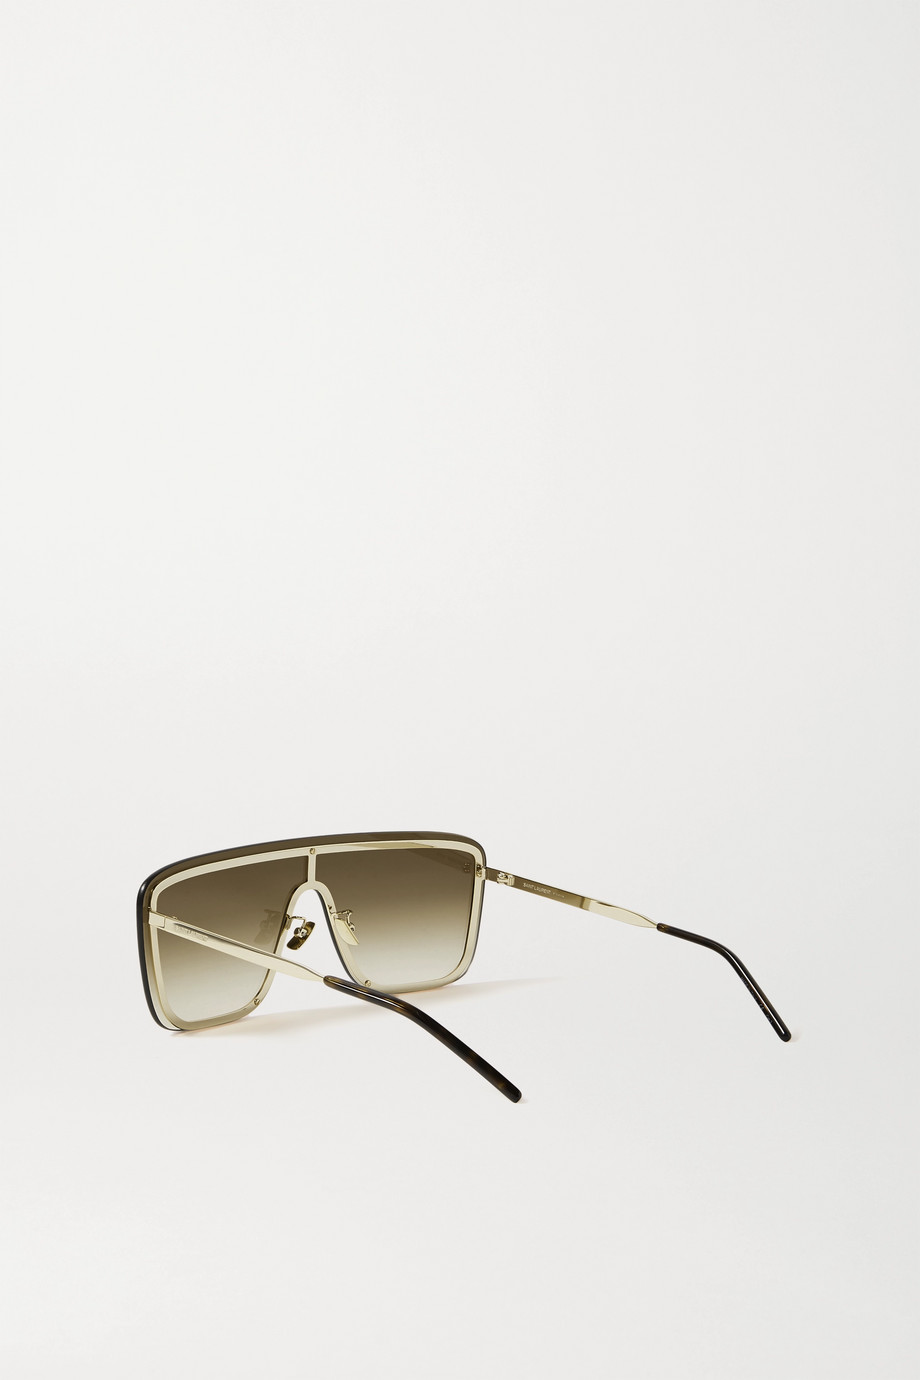 SAINT LAURENT D-frame gold-tone and tortoiseshell acetate sunglasses